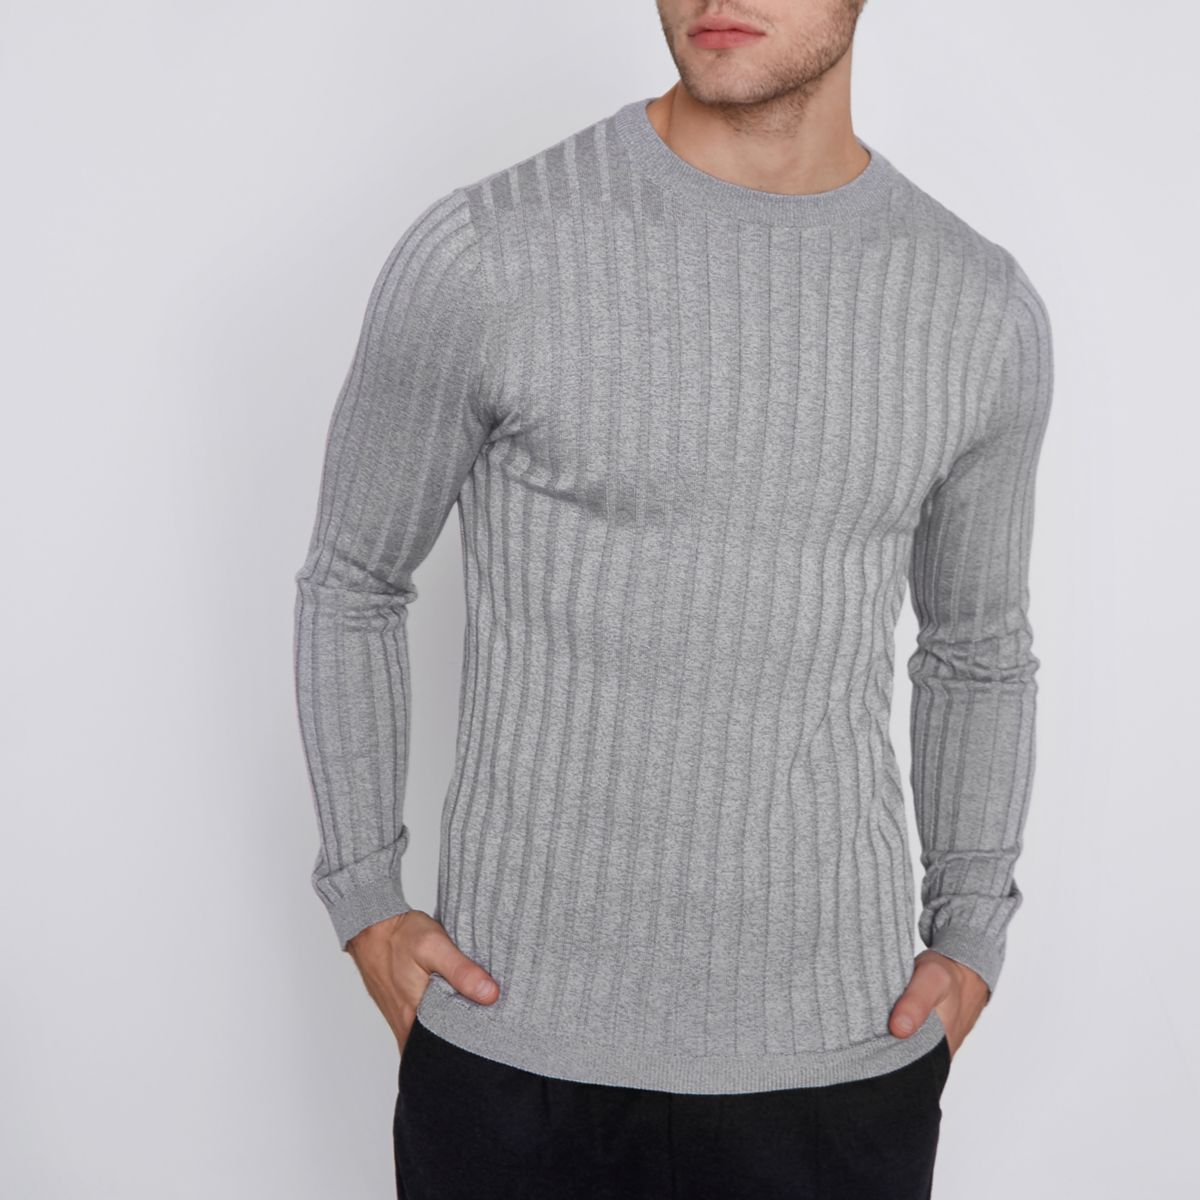 Grey rib knit muscle fit crew neck jumper